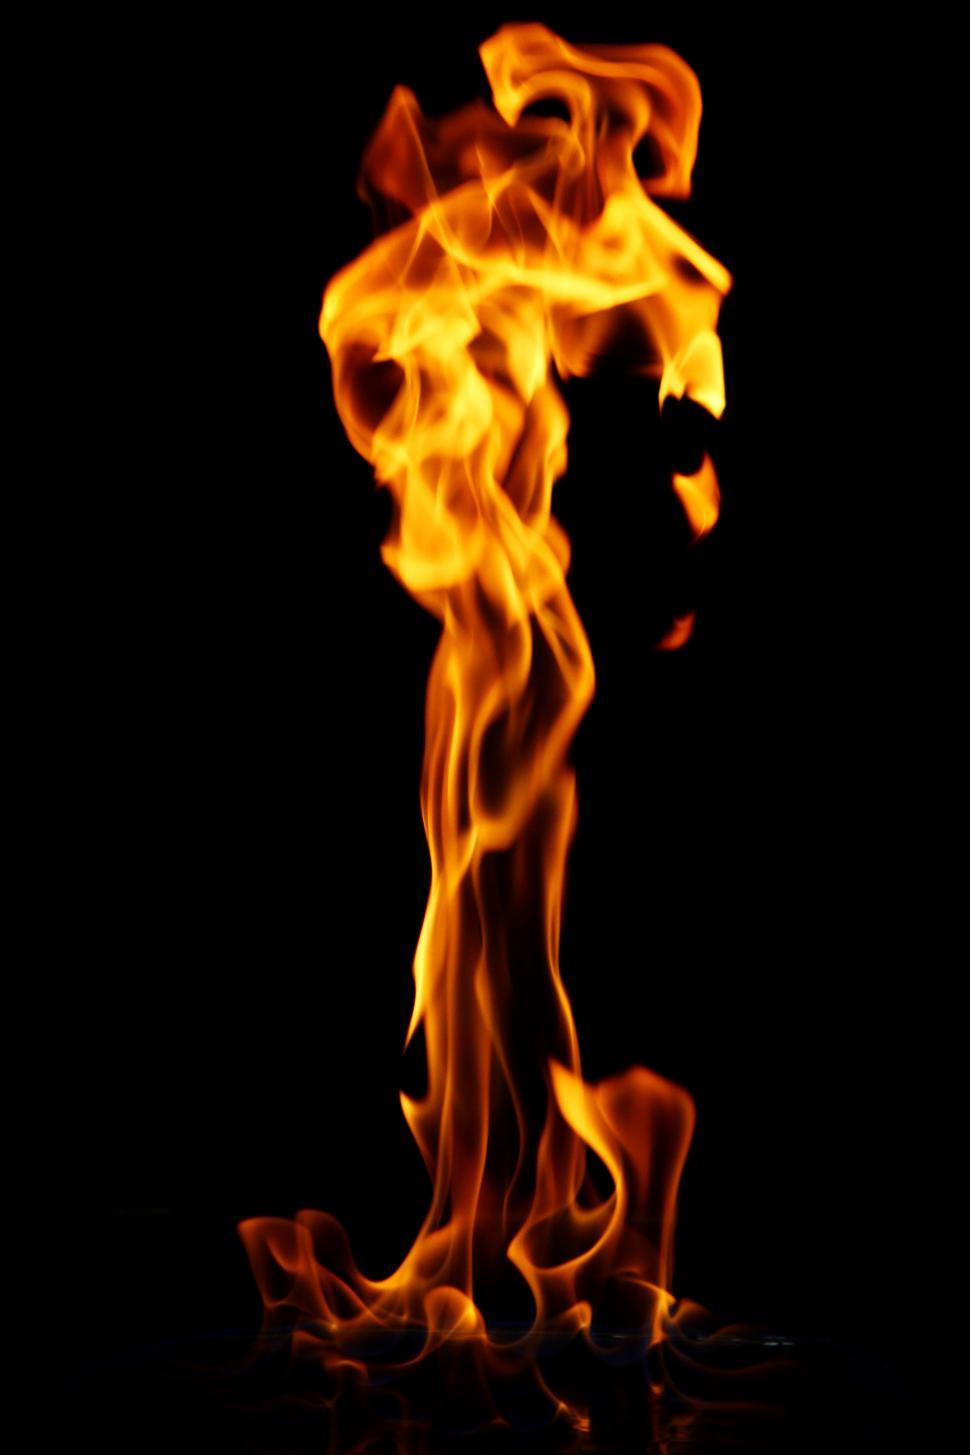 Download Free Stock Photo of Glowing flame of a hot fire